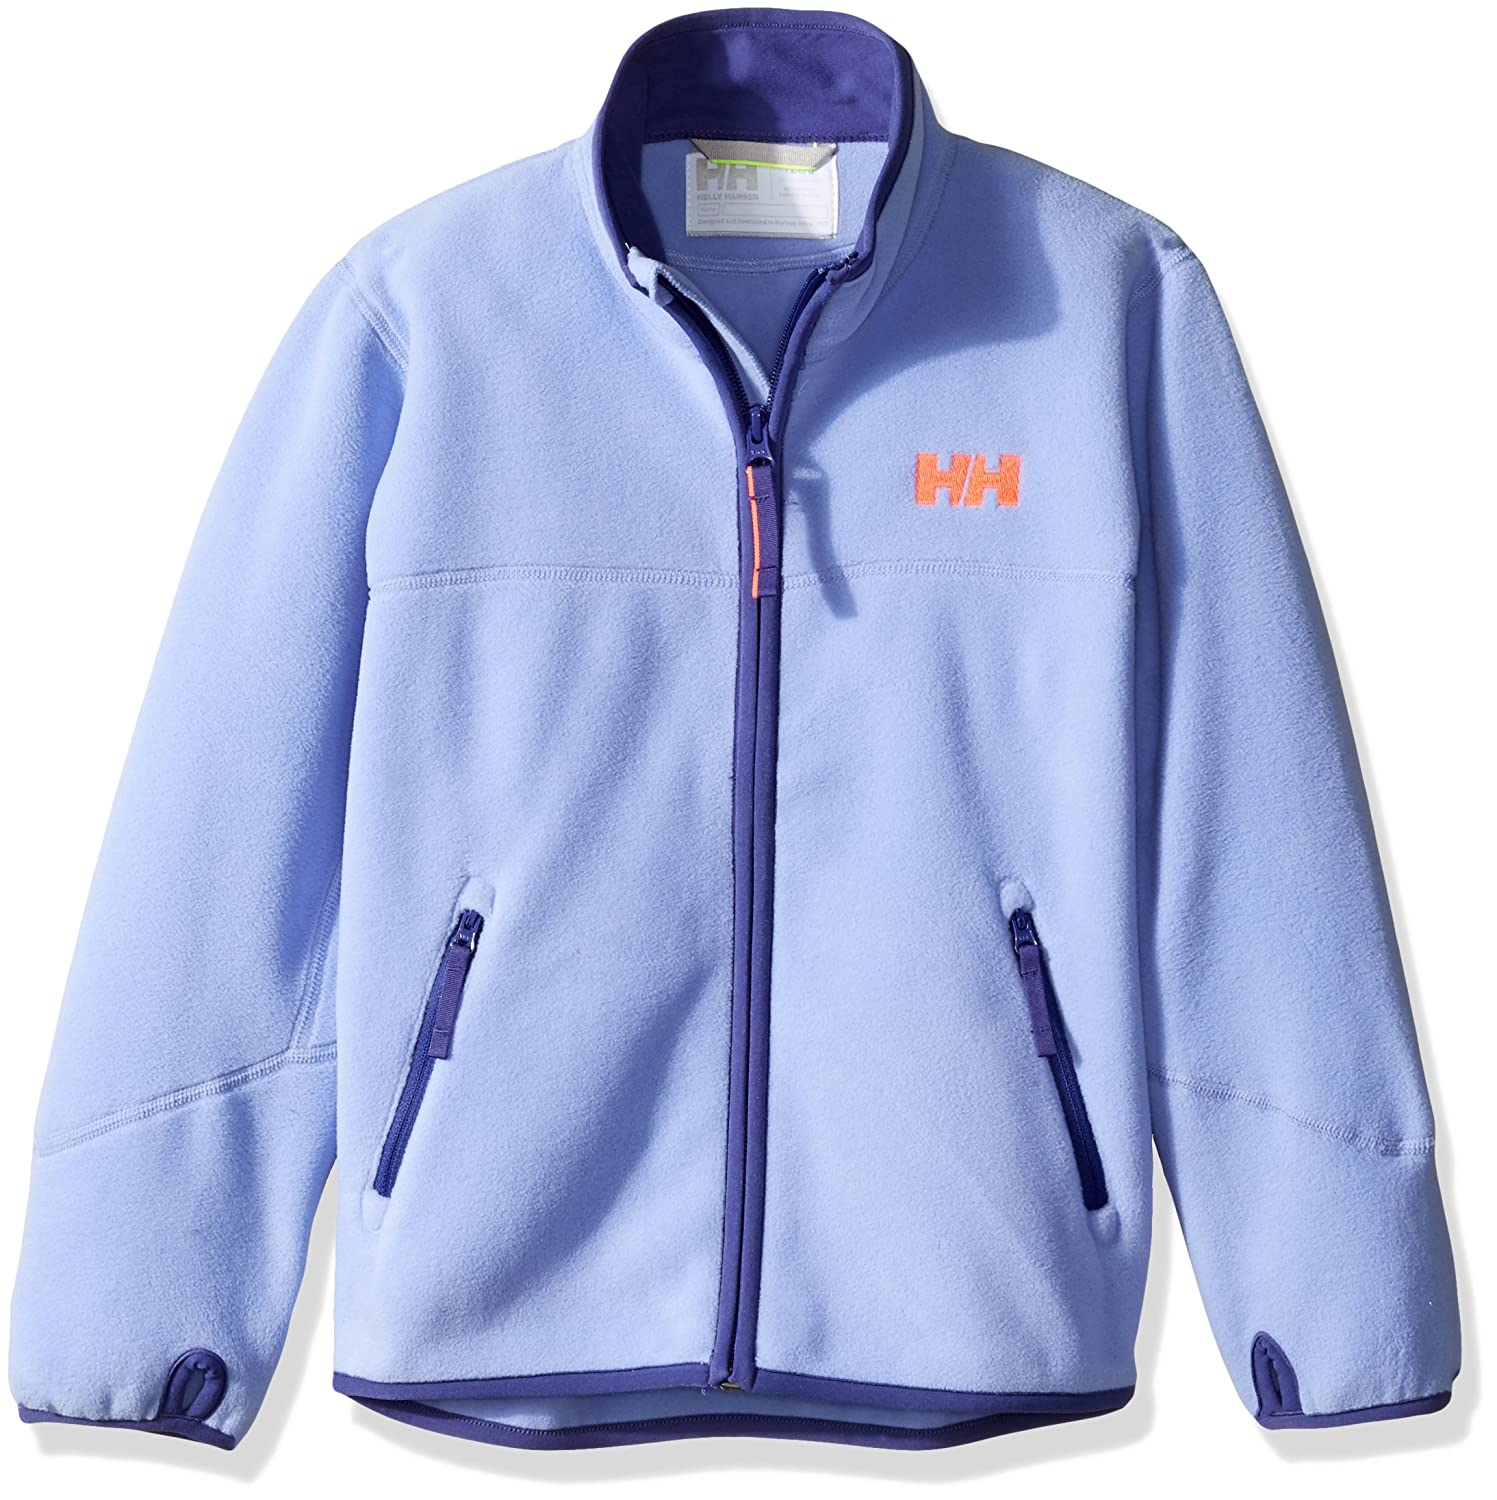 Helly Hansen Kid's Fleece Jacket B06XHDFFLJ-p